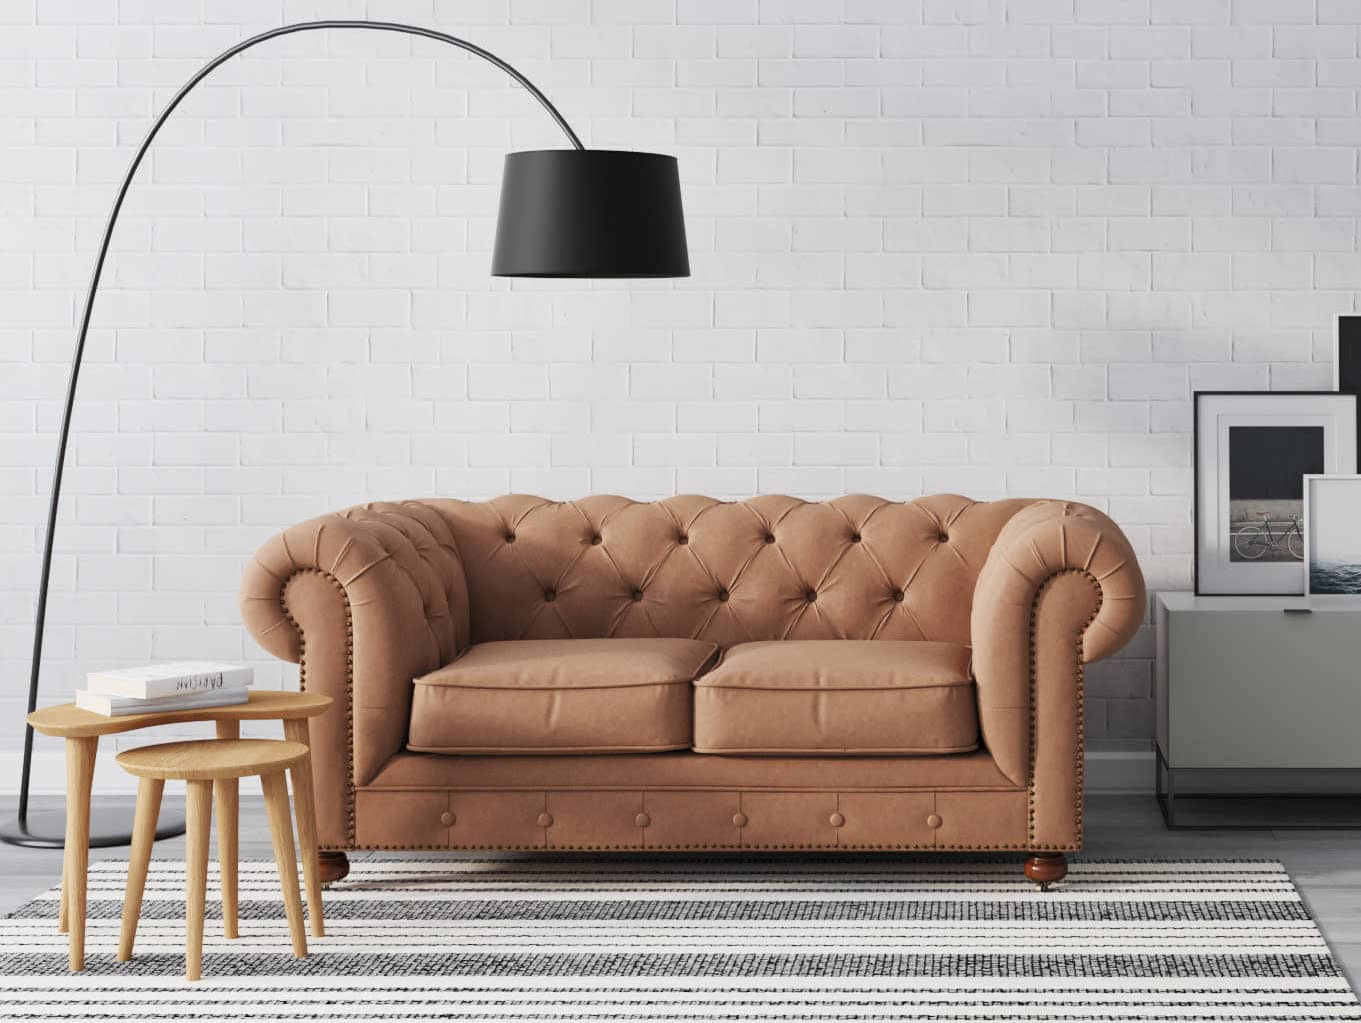 brosa camden brown leather chesterfield sofa